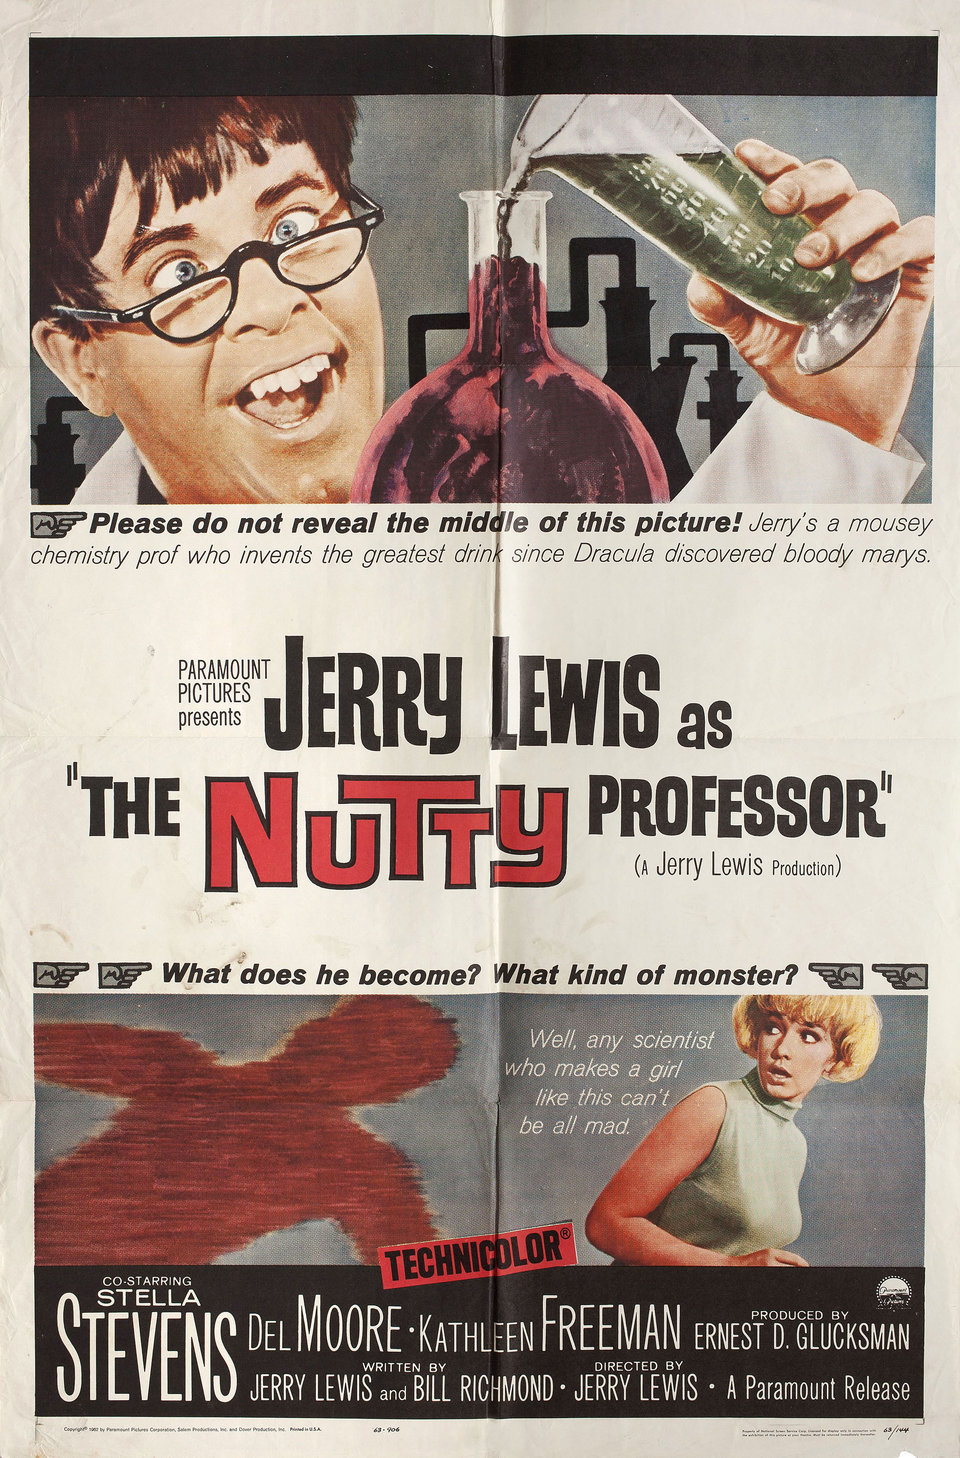 The Nutty Professor 1963 U.S. One Sheet Poster